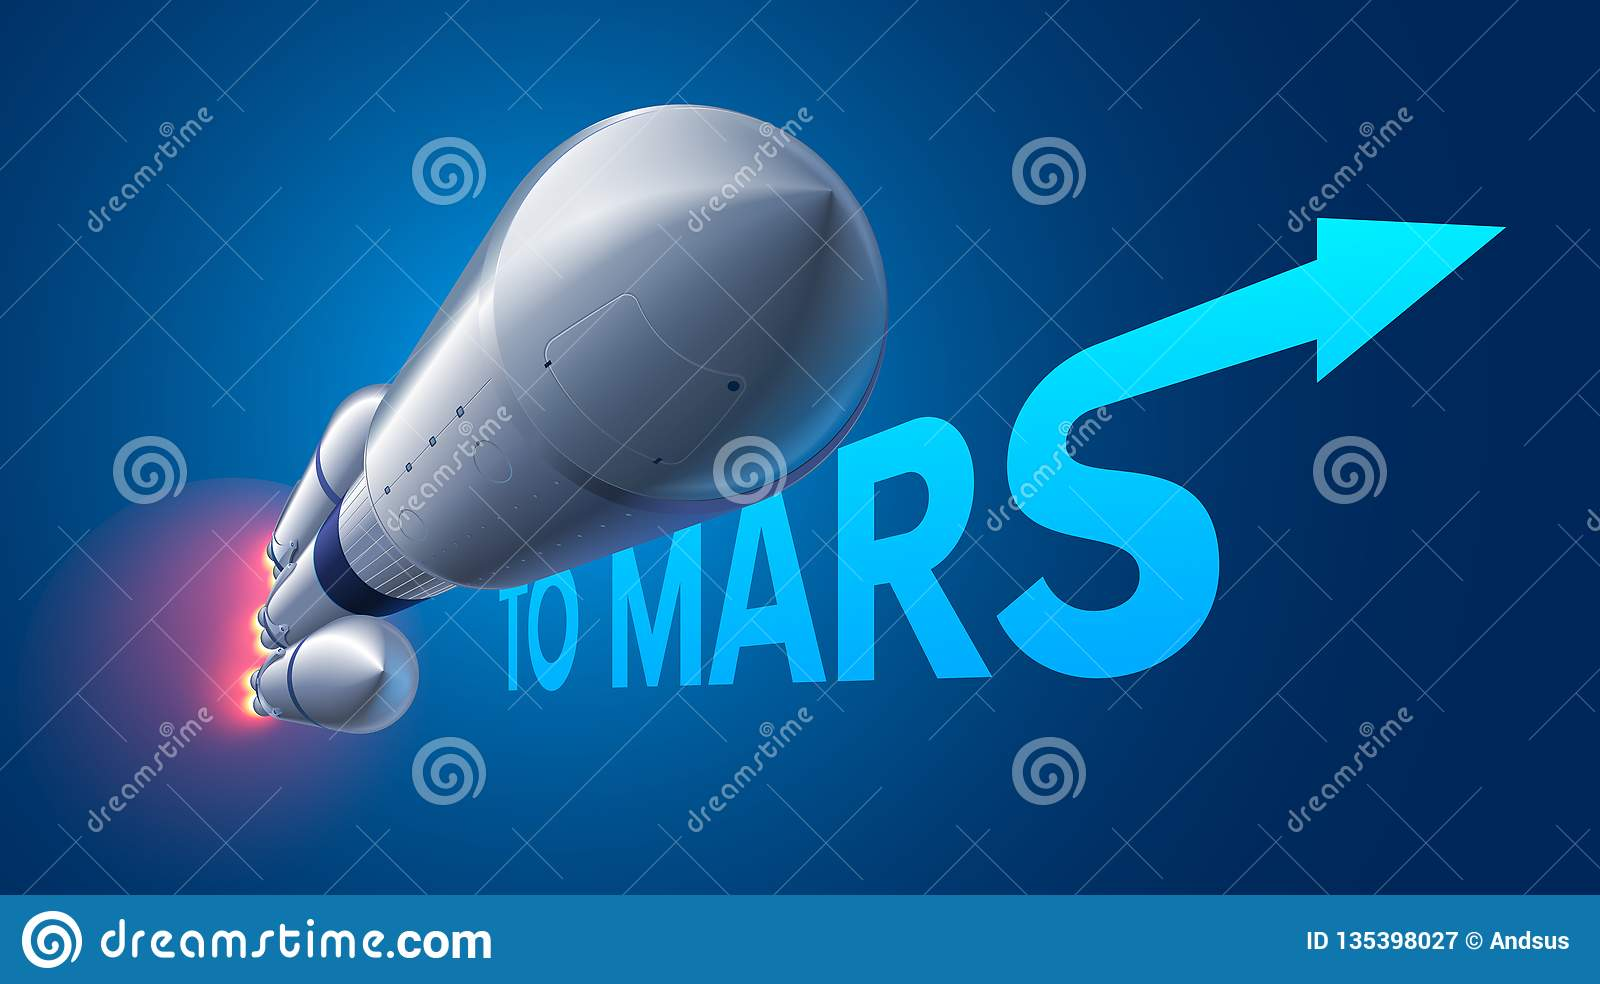 Heavy space rocket launch to Mars. Mission to Mars